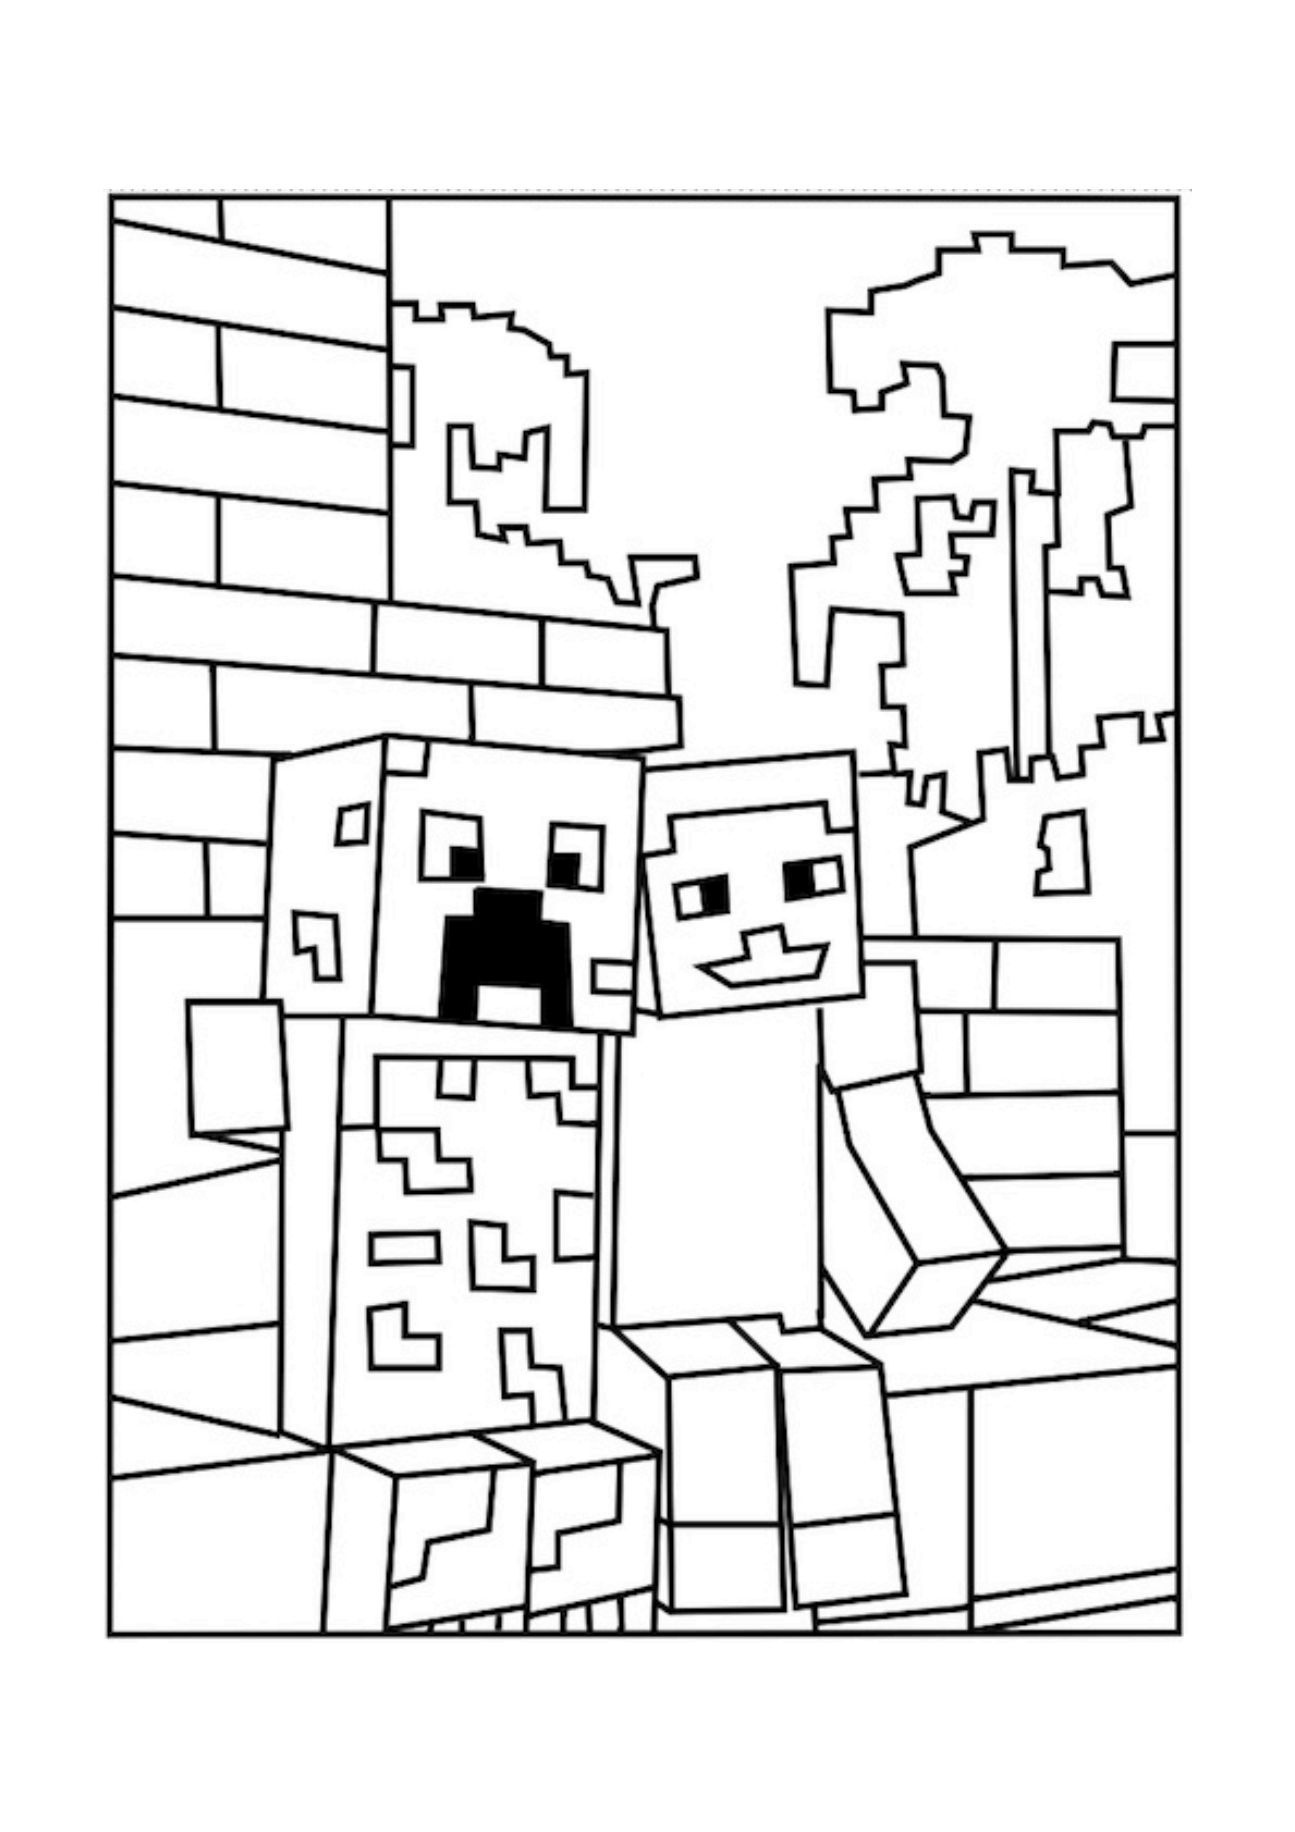 Best Minecraft Creeper Coloring Pages - Free, Printable Minecraft - Free Printable Minecraft Activity Pages